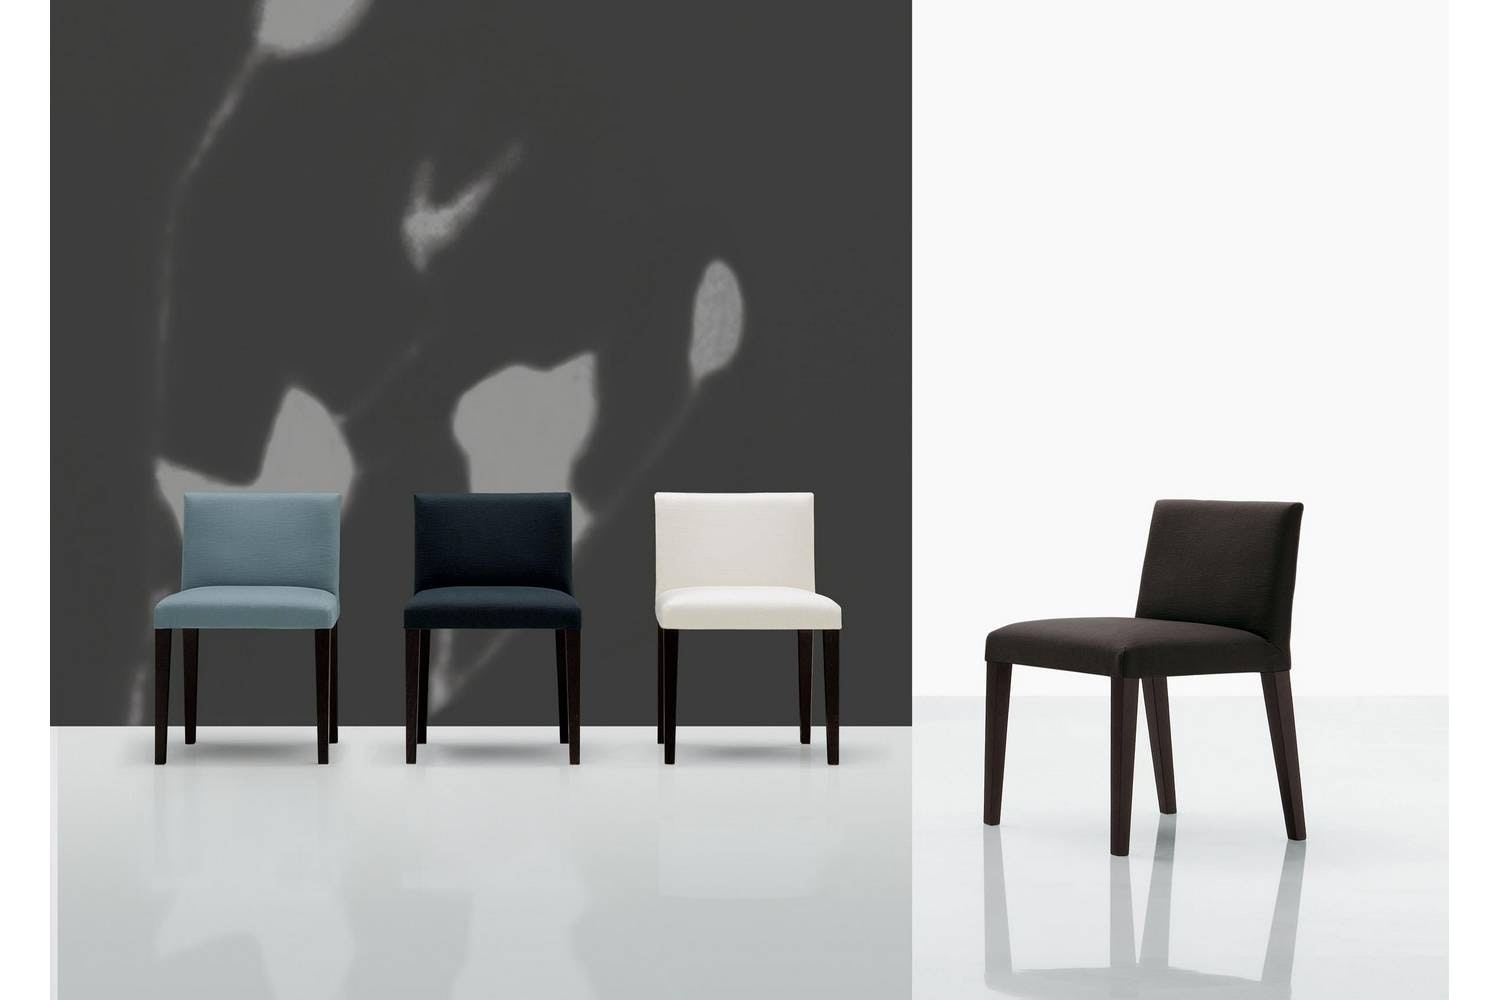 Velvet Chair by CR&S Poliform for Poliform